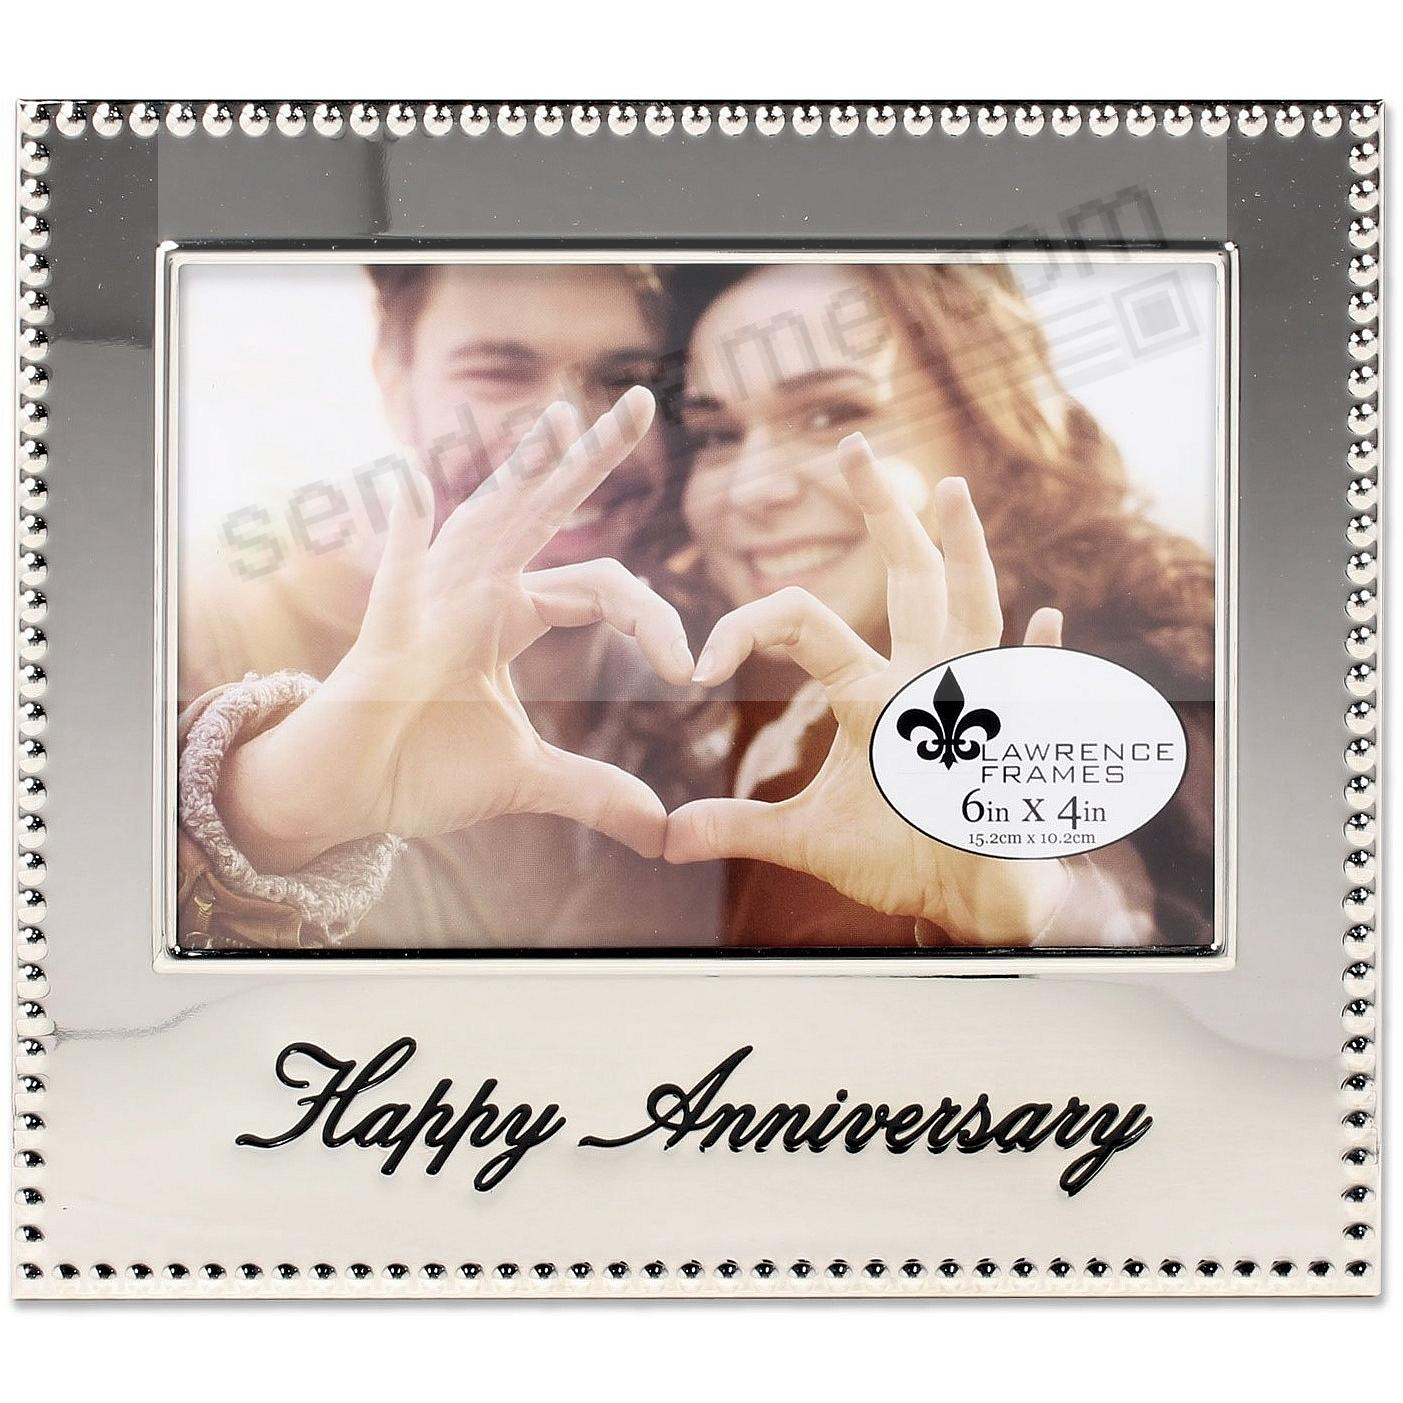 HAPPY ANNIVERSARY special engraved celebration frame